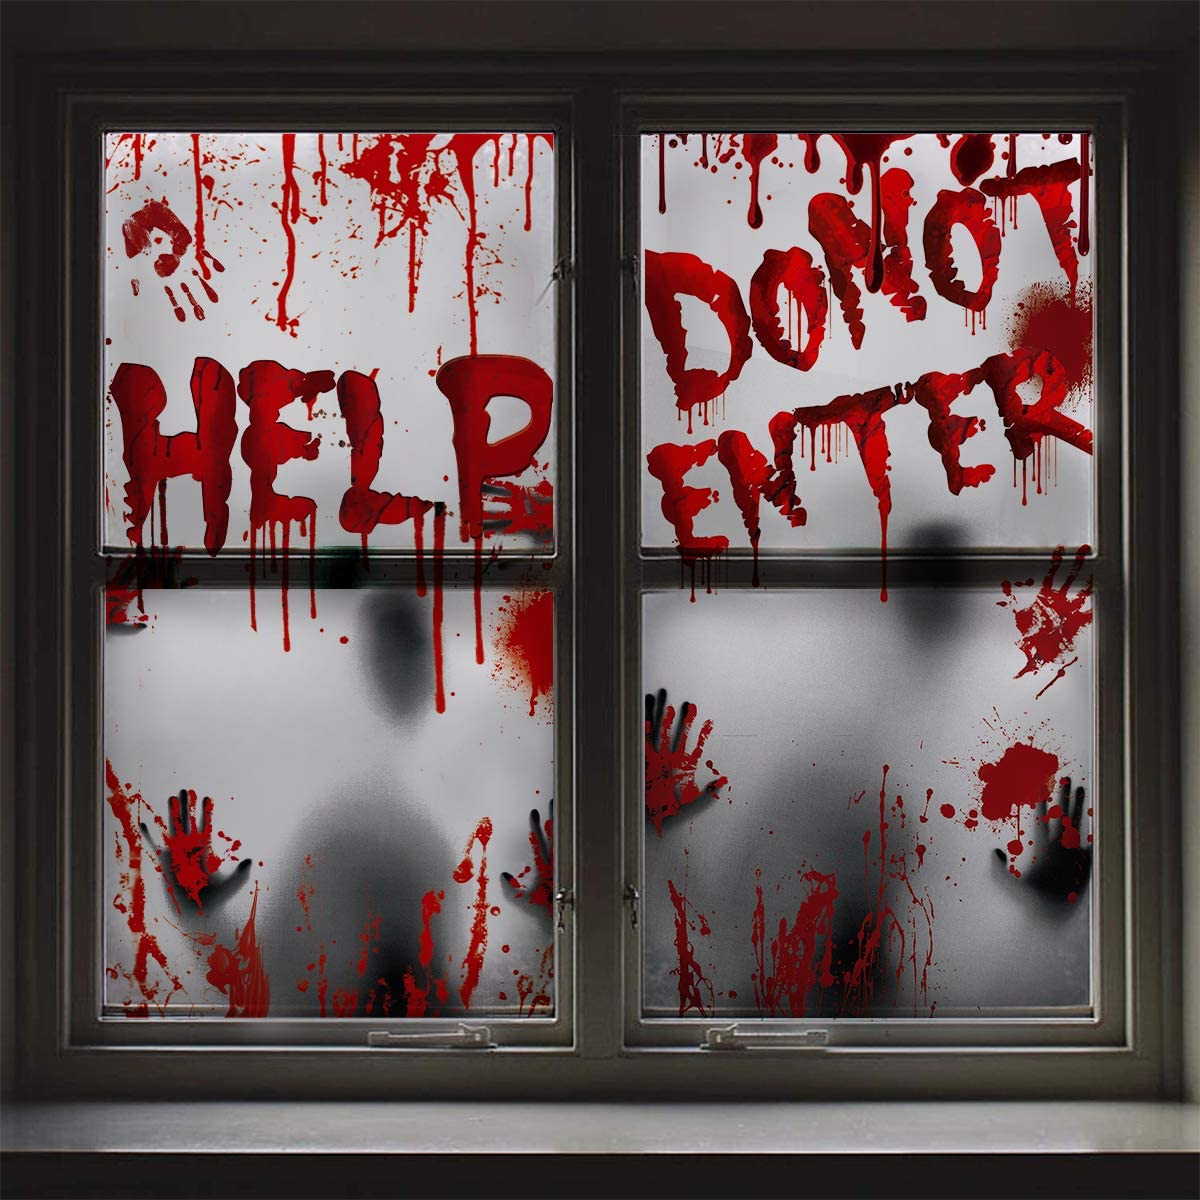 Amazon Com Halloween Giant Bloody Window Posters Window Clings 2pcs Scary Zombie Handprints Window Silhouette Party Decoration Haunted House Door Cove Creepy School Dormitory Indoor Outdoor Decorations Garden Outdoor,Harley Ann Wolf Christmas For Two